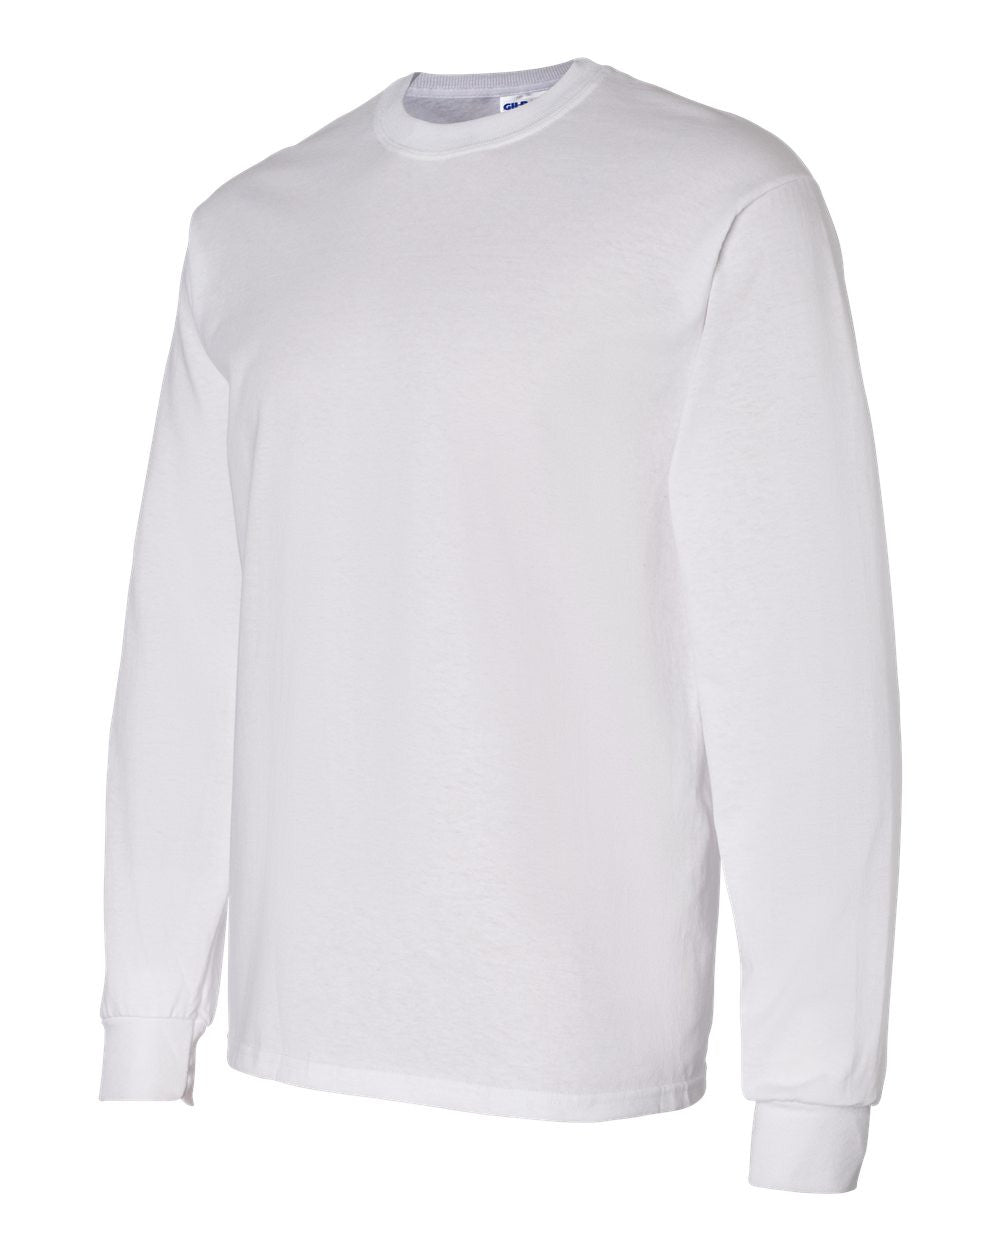 Long Sleeve T-shirts by Gildan